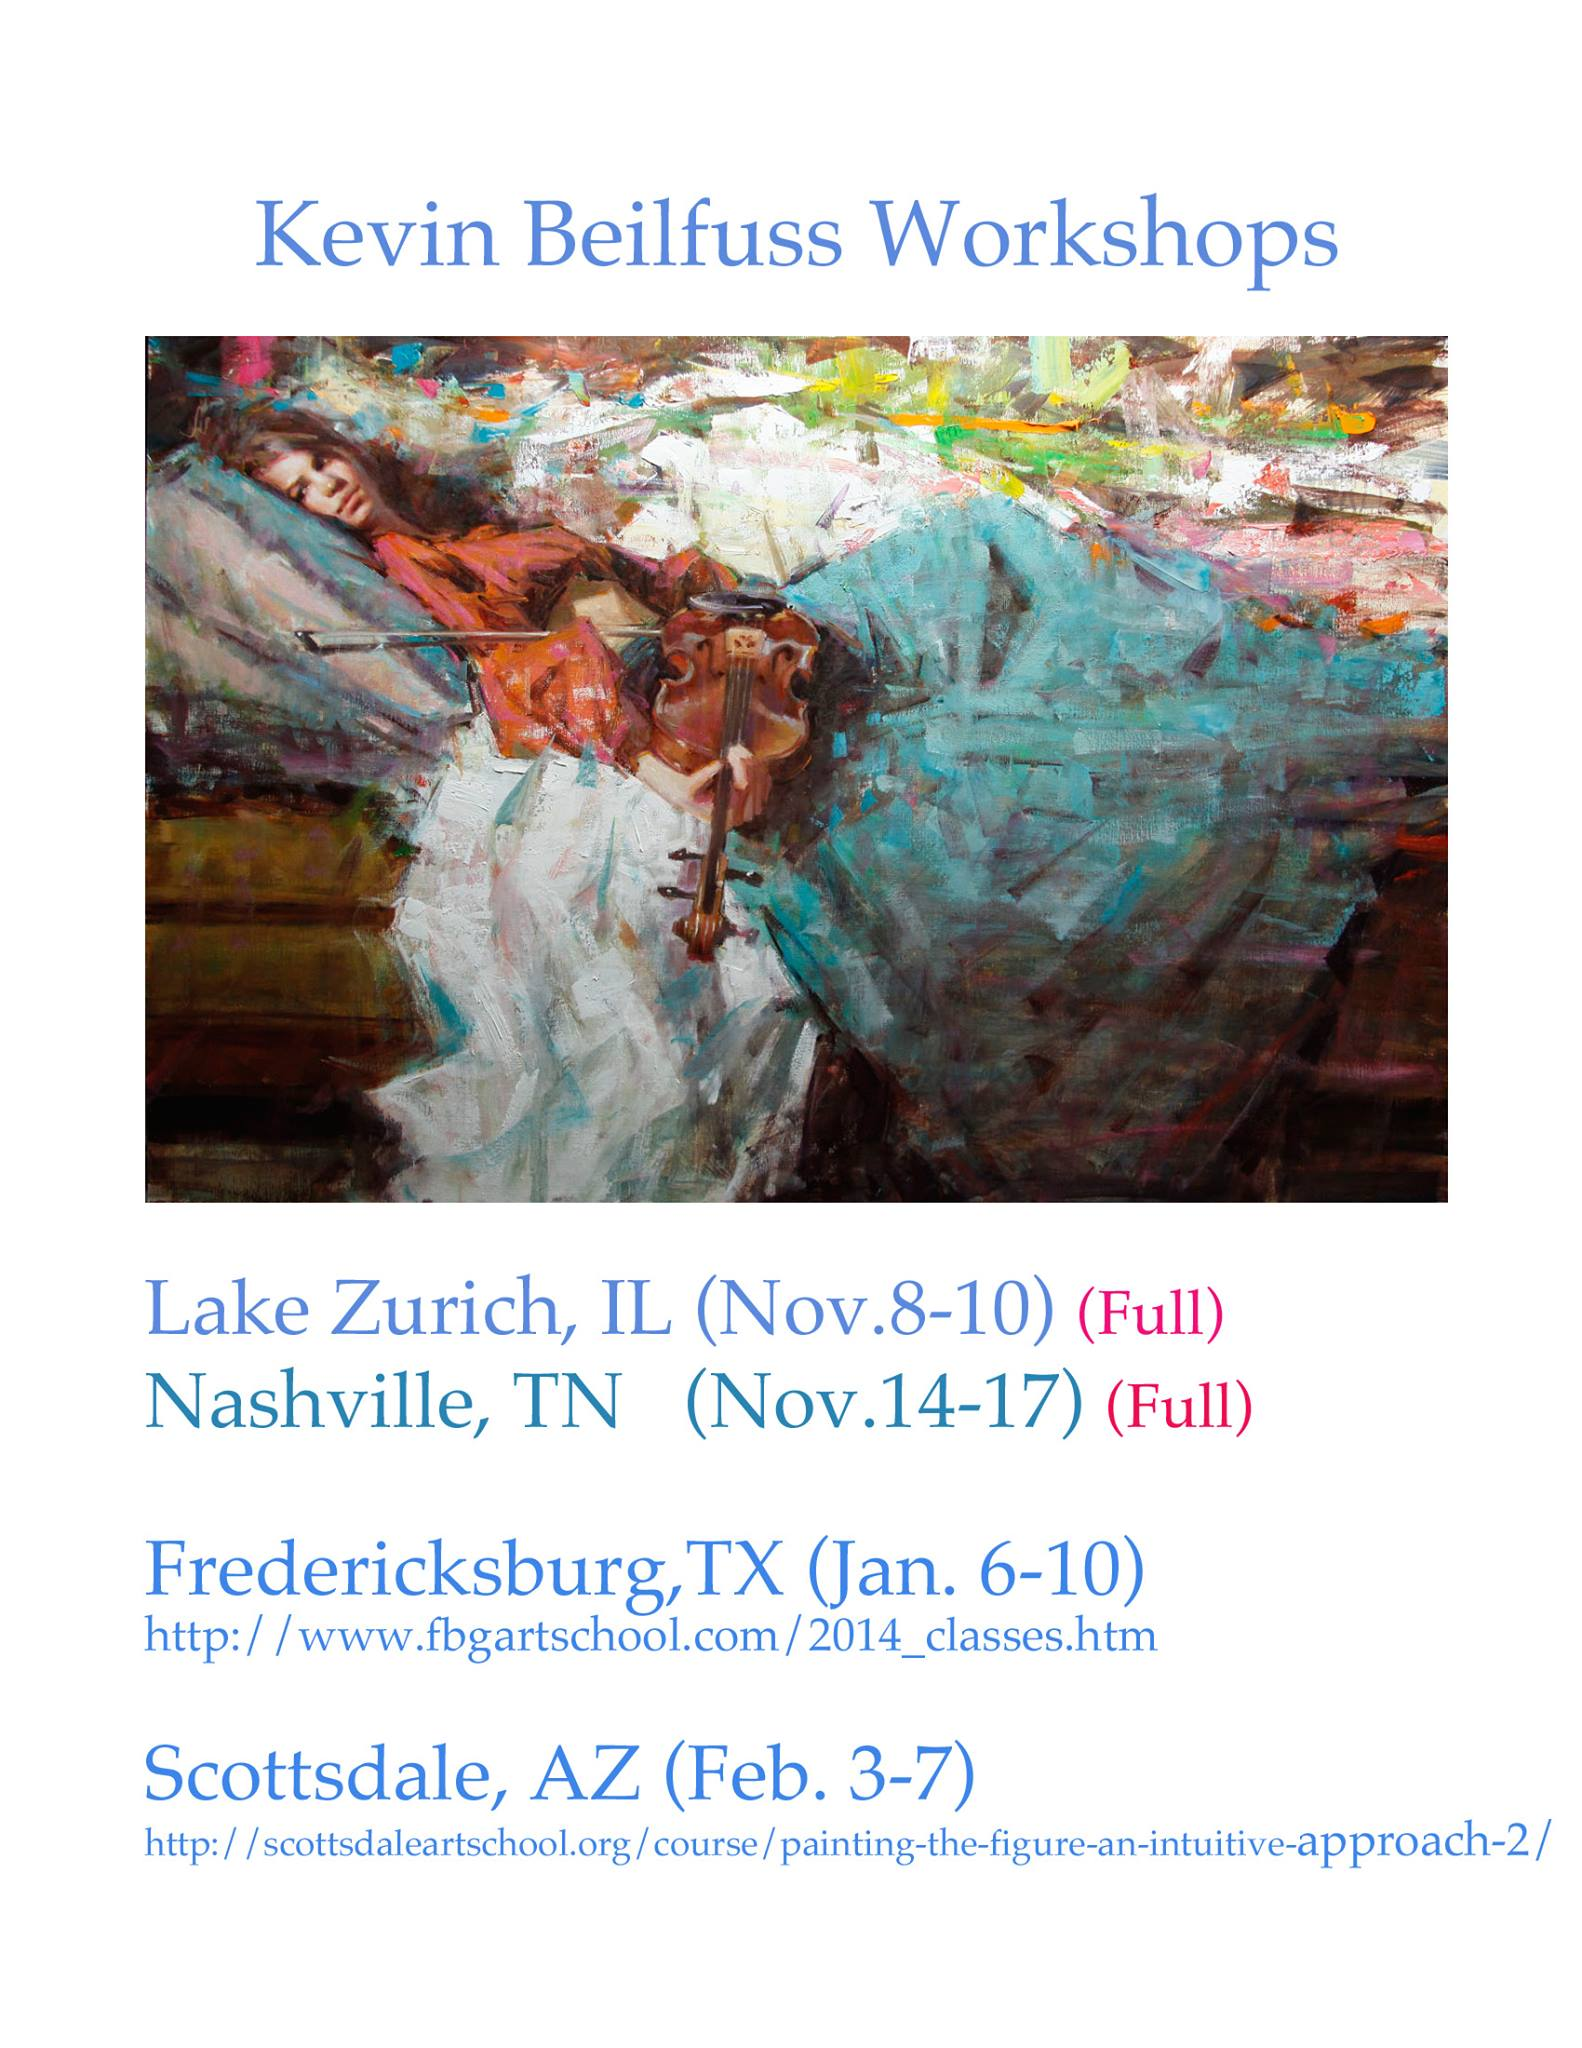 Kevin BEilfuss workshop